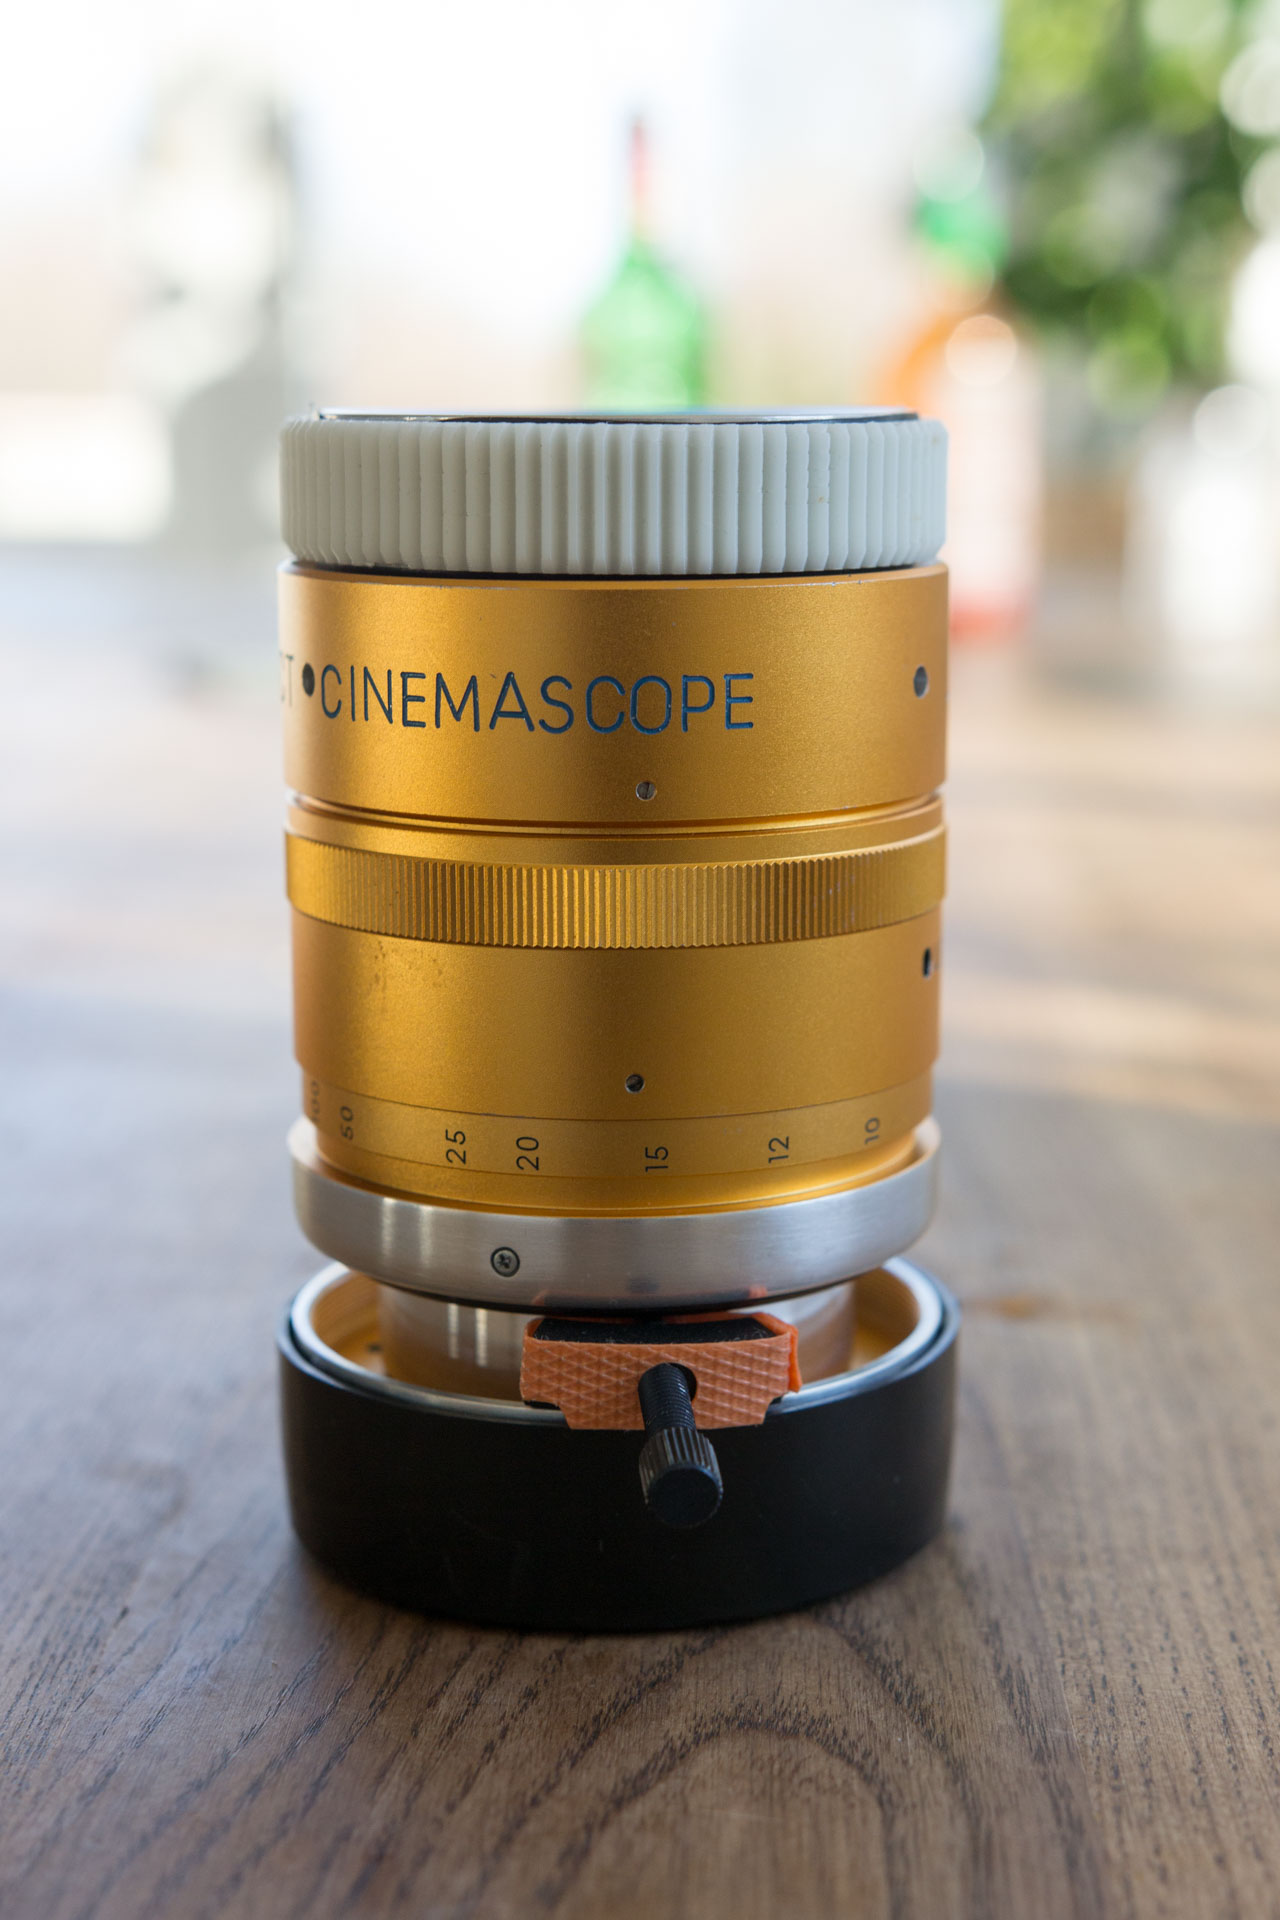 Sankor 2x Single focus Anamorphic Cinemascope Lens: For Sale and